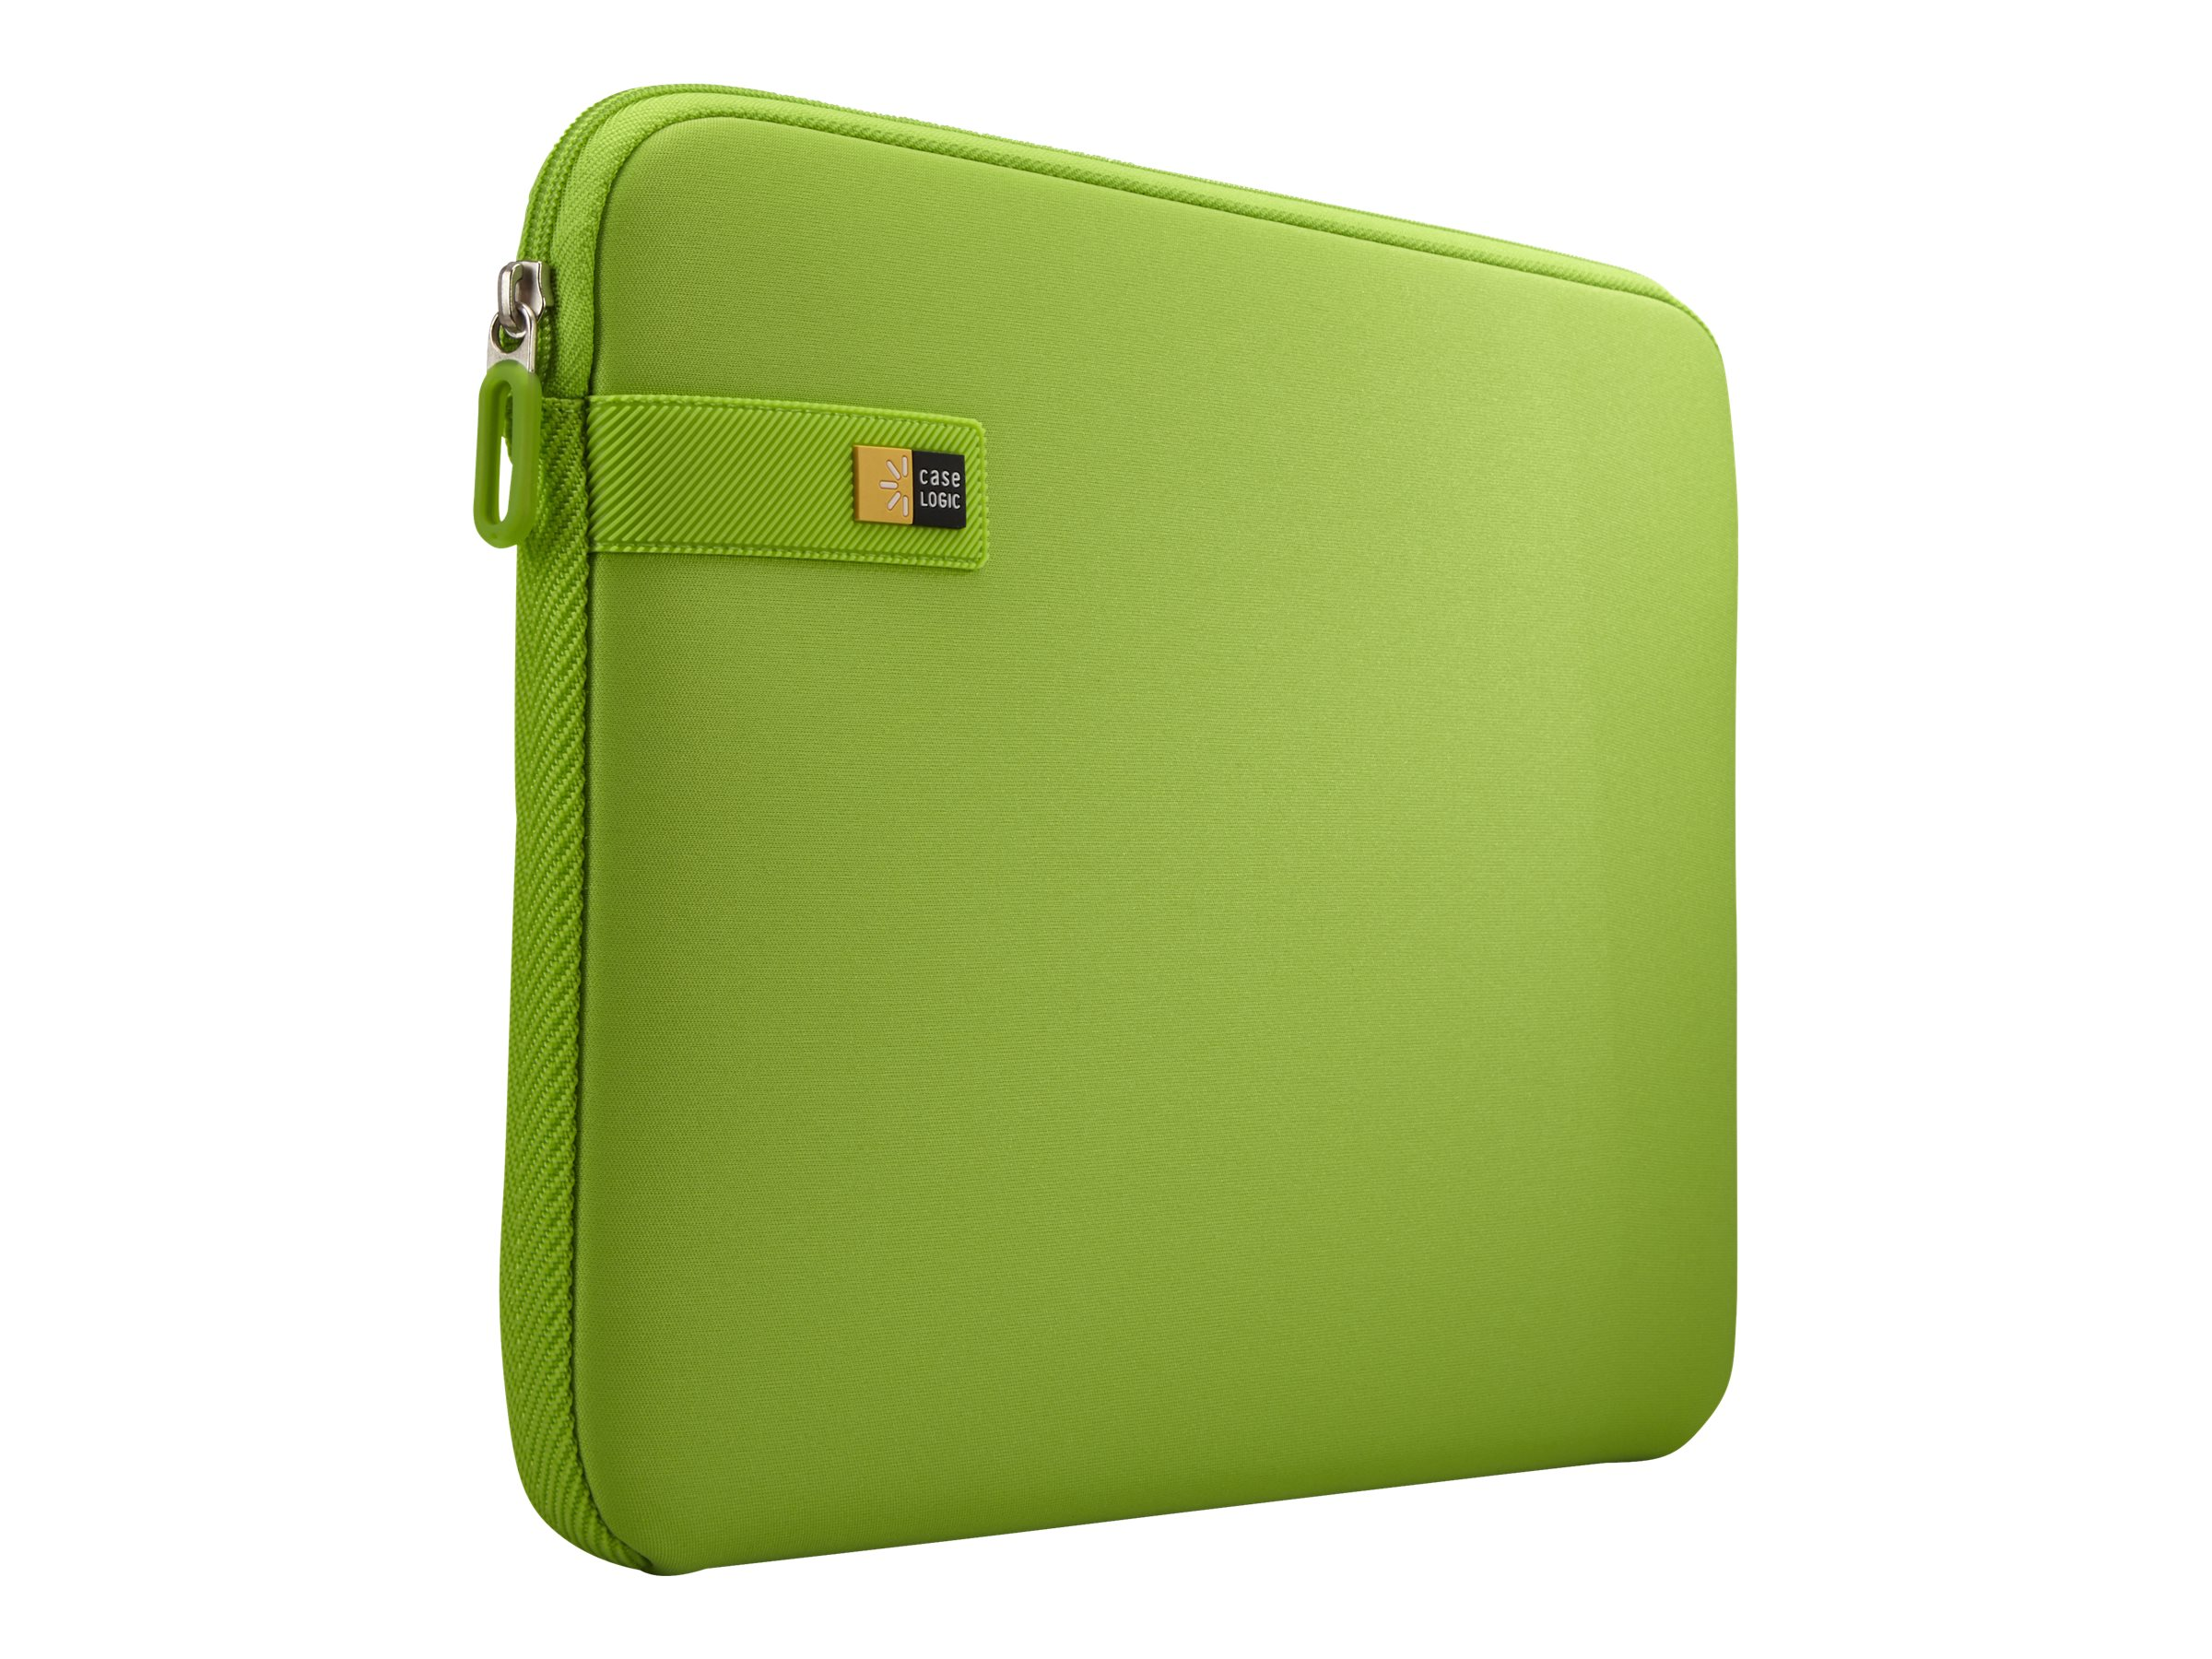 Case Logic 13.3 Laptop Sleeve, Lime, LAPS113LIME